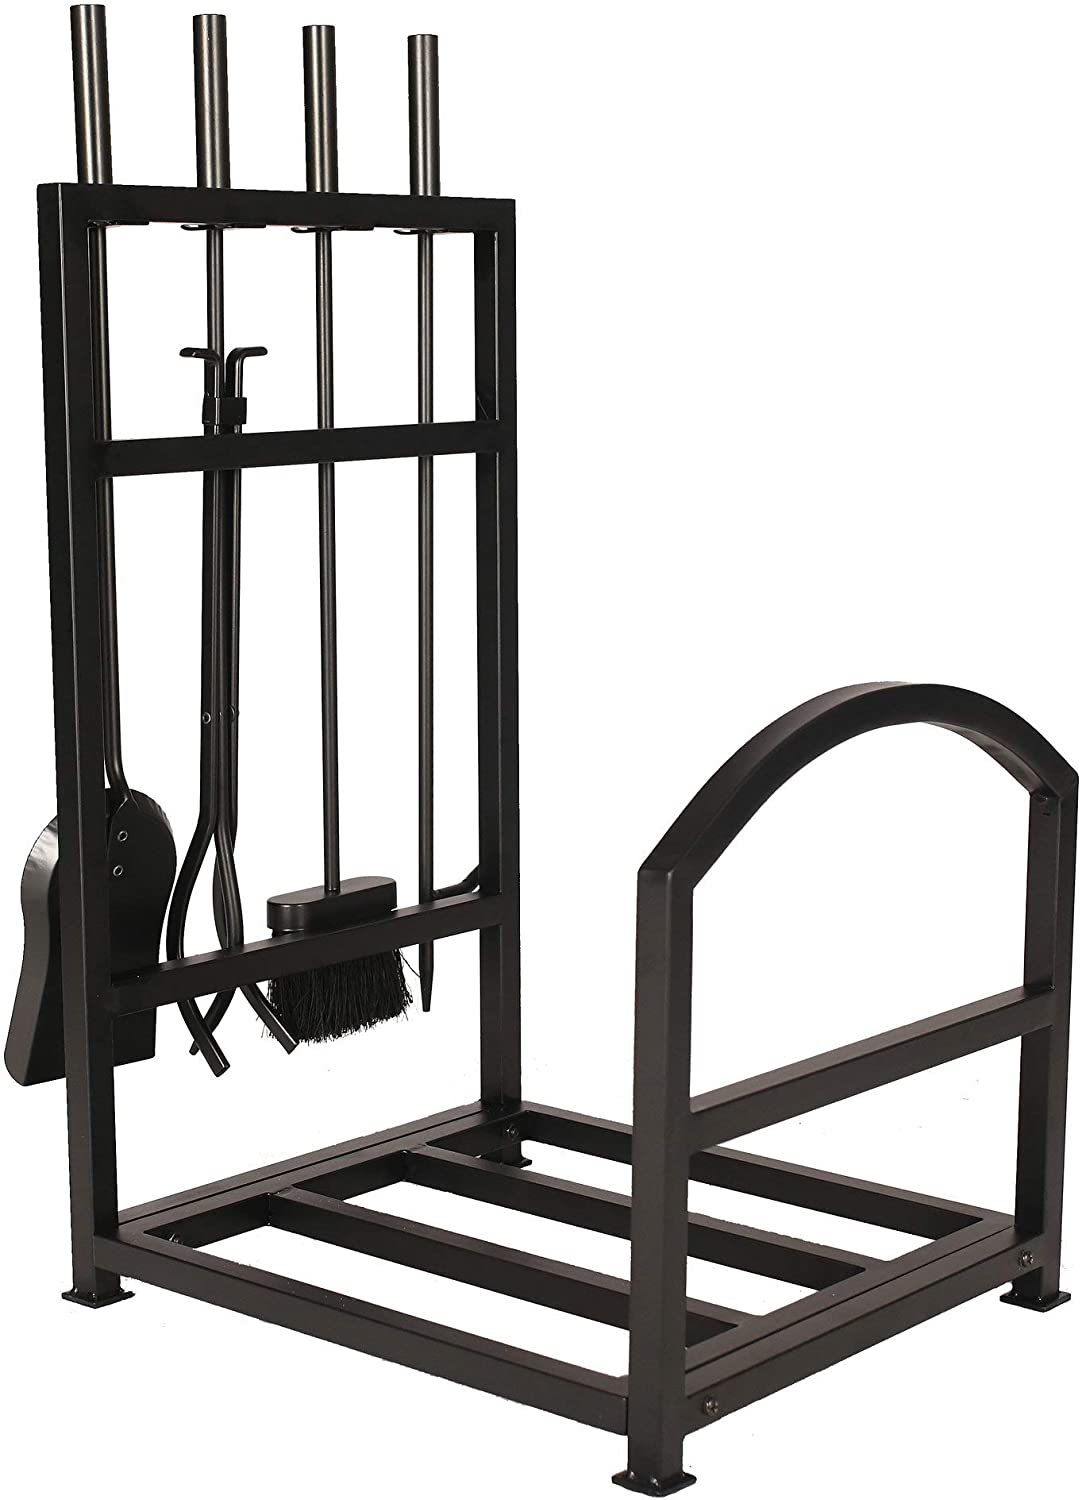 "1. GO Iron Firewood Log Rack with Fireplace Tool Set, 15""(W) X 17.5""(D) X 28.5""(H) 71cUtSiiUcL"